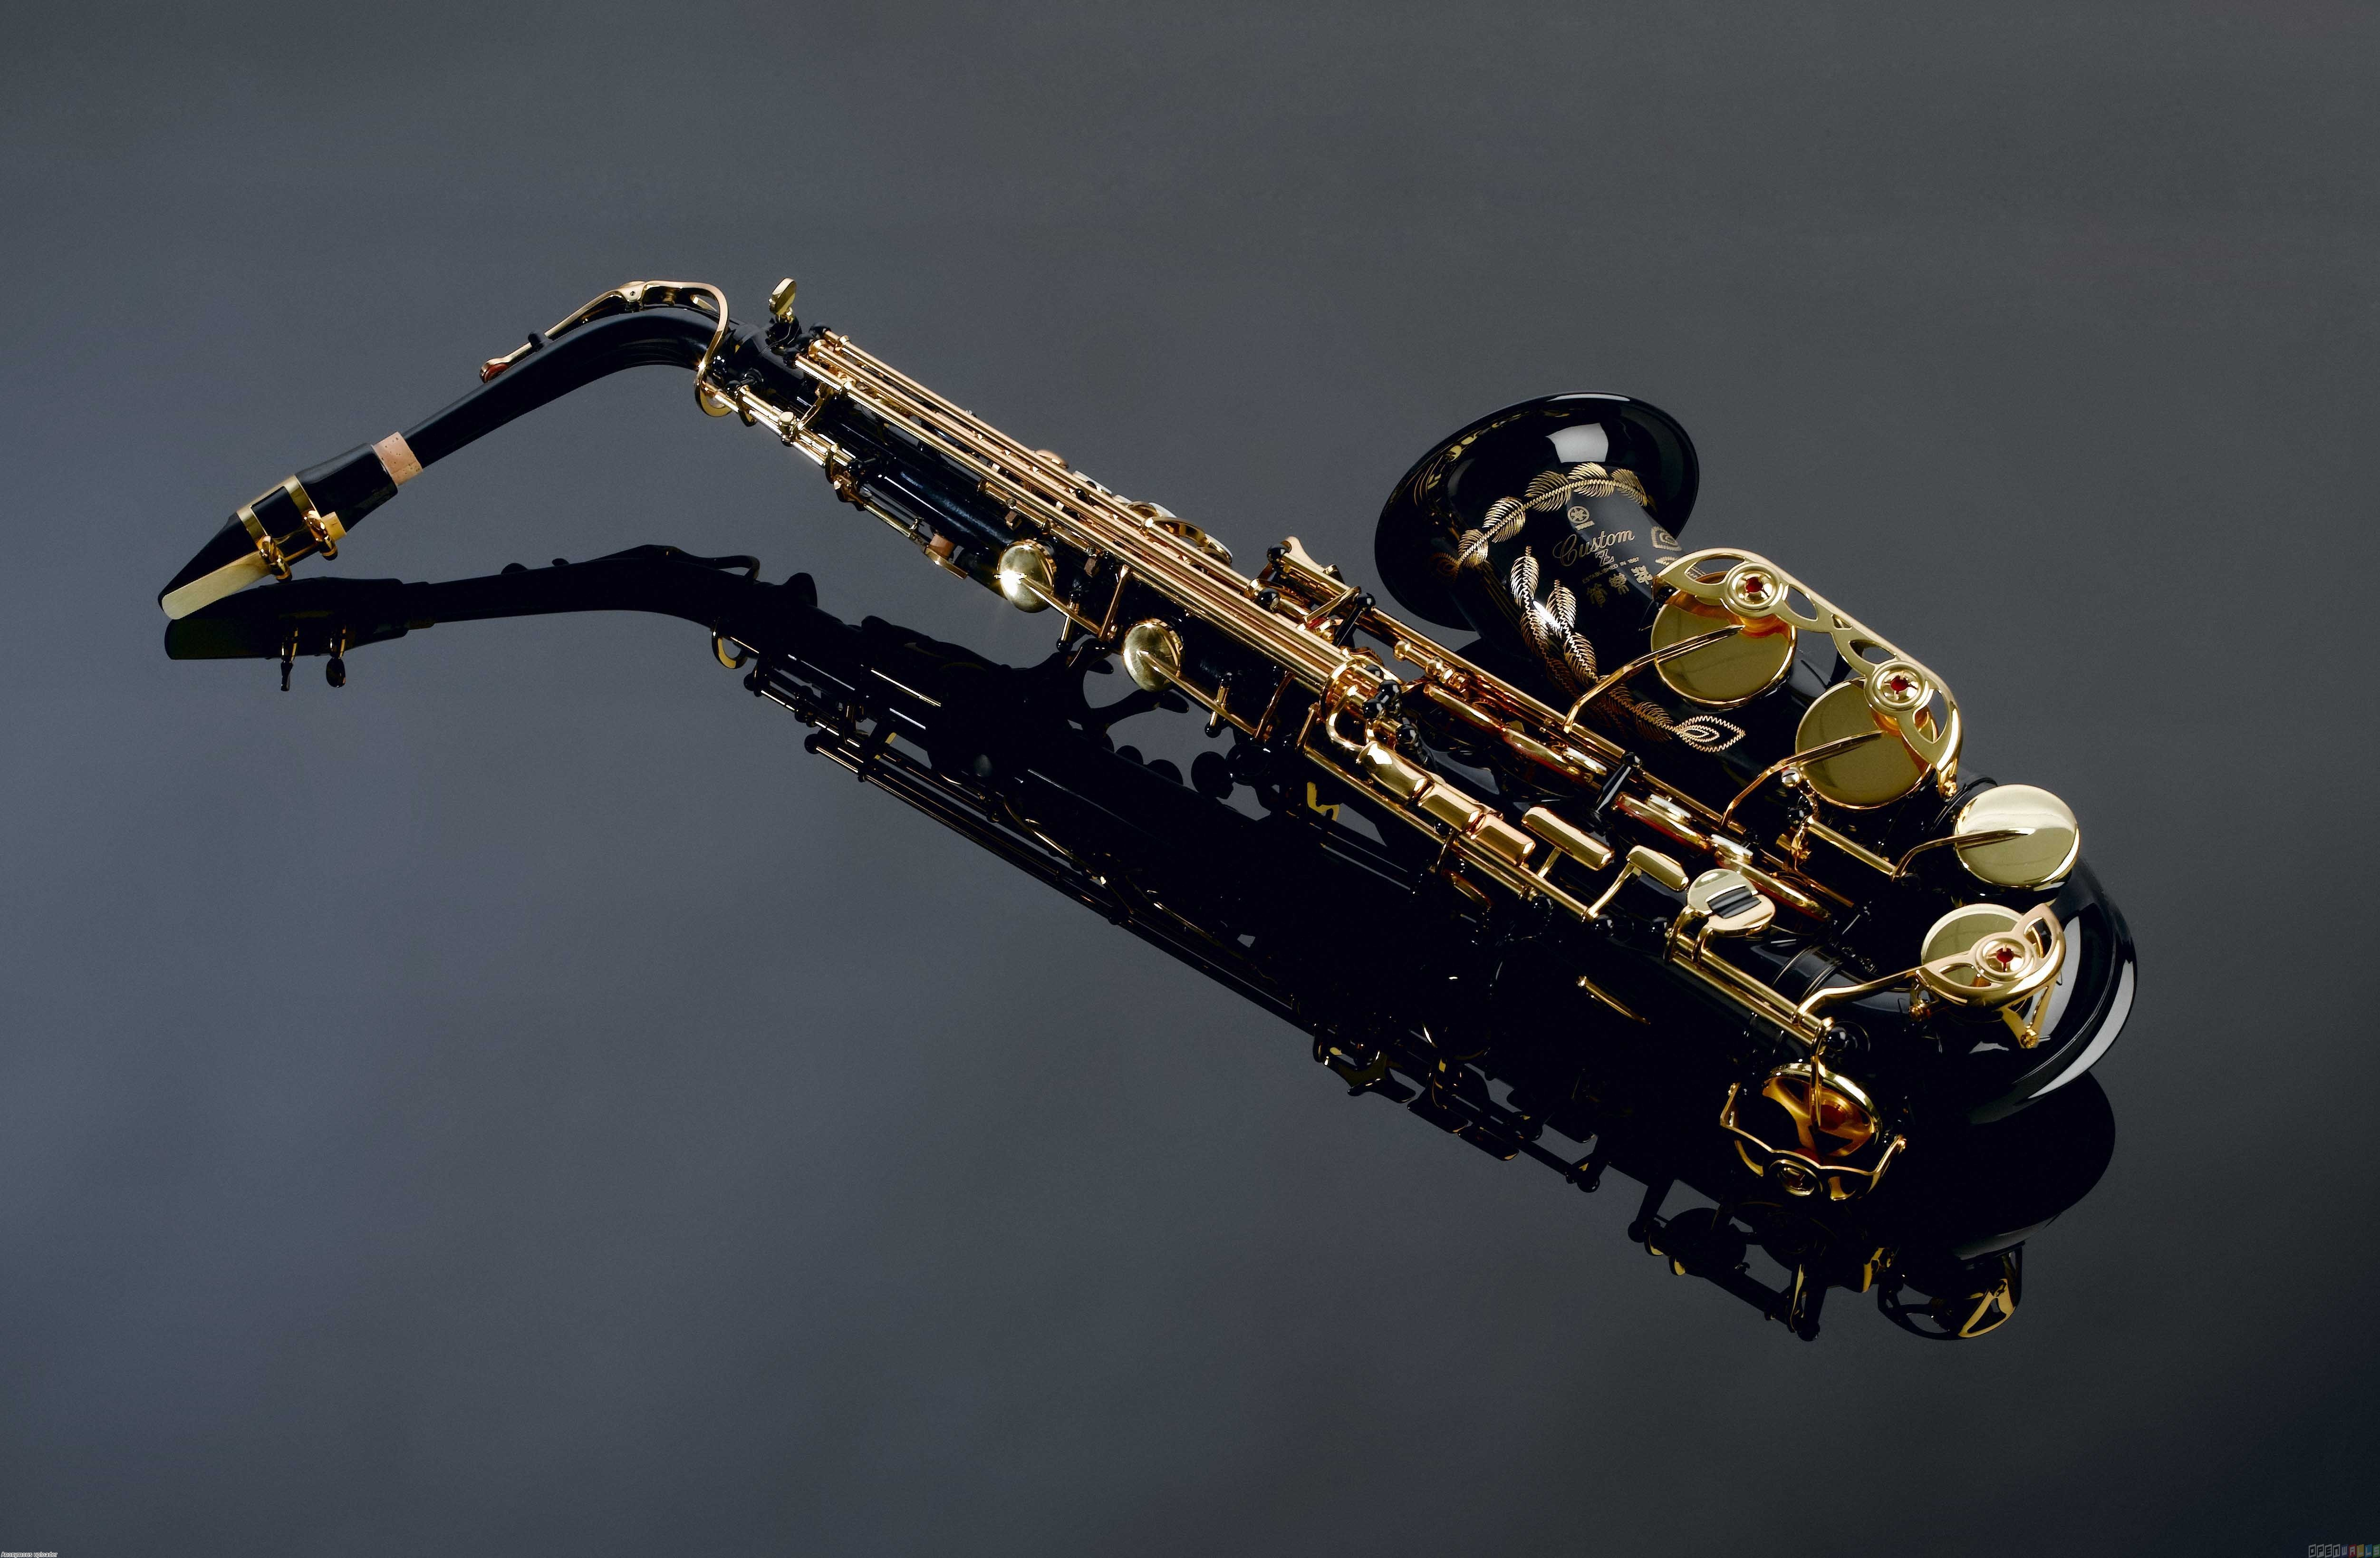 title saxophone uploader anonymous licence category others tags sax 5007x3277